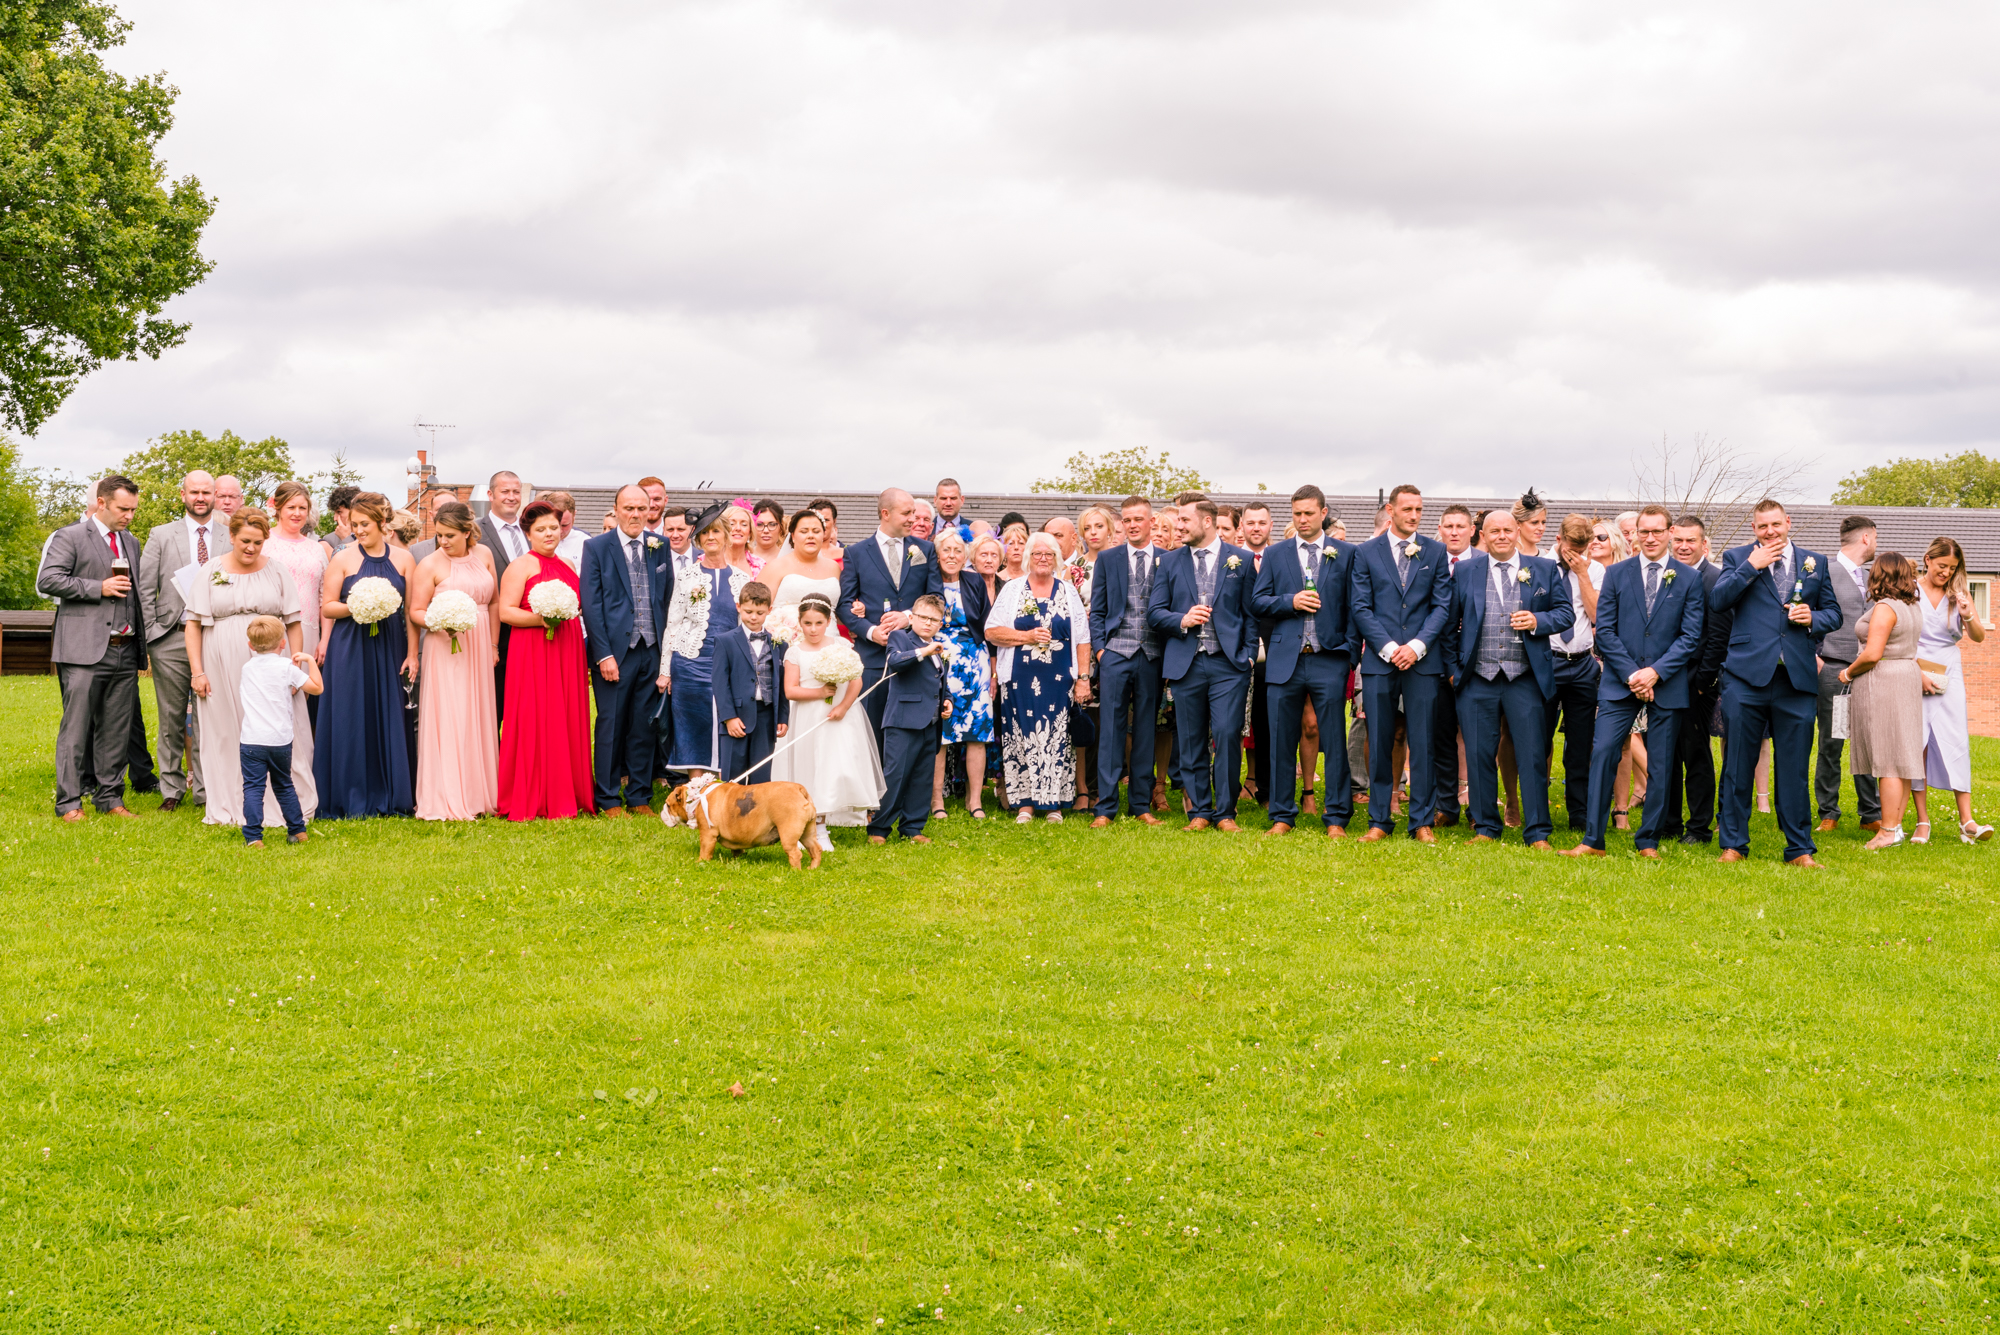 all the guests gather for a full group photo